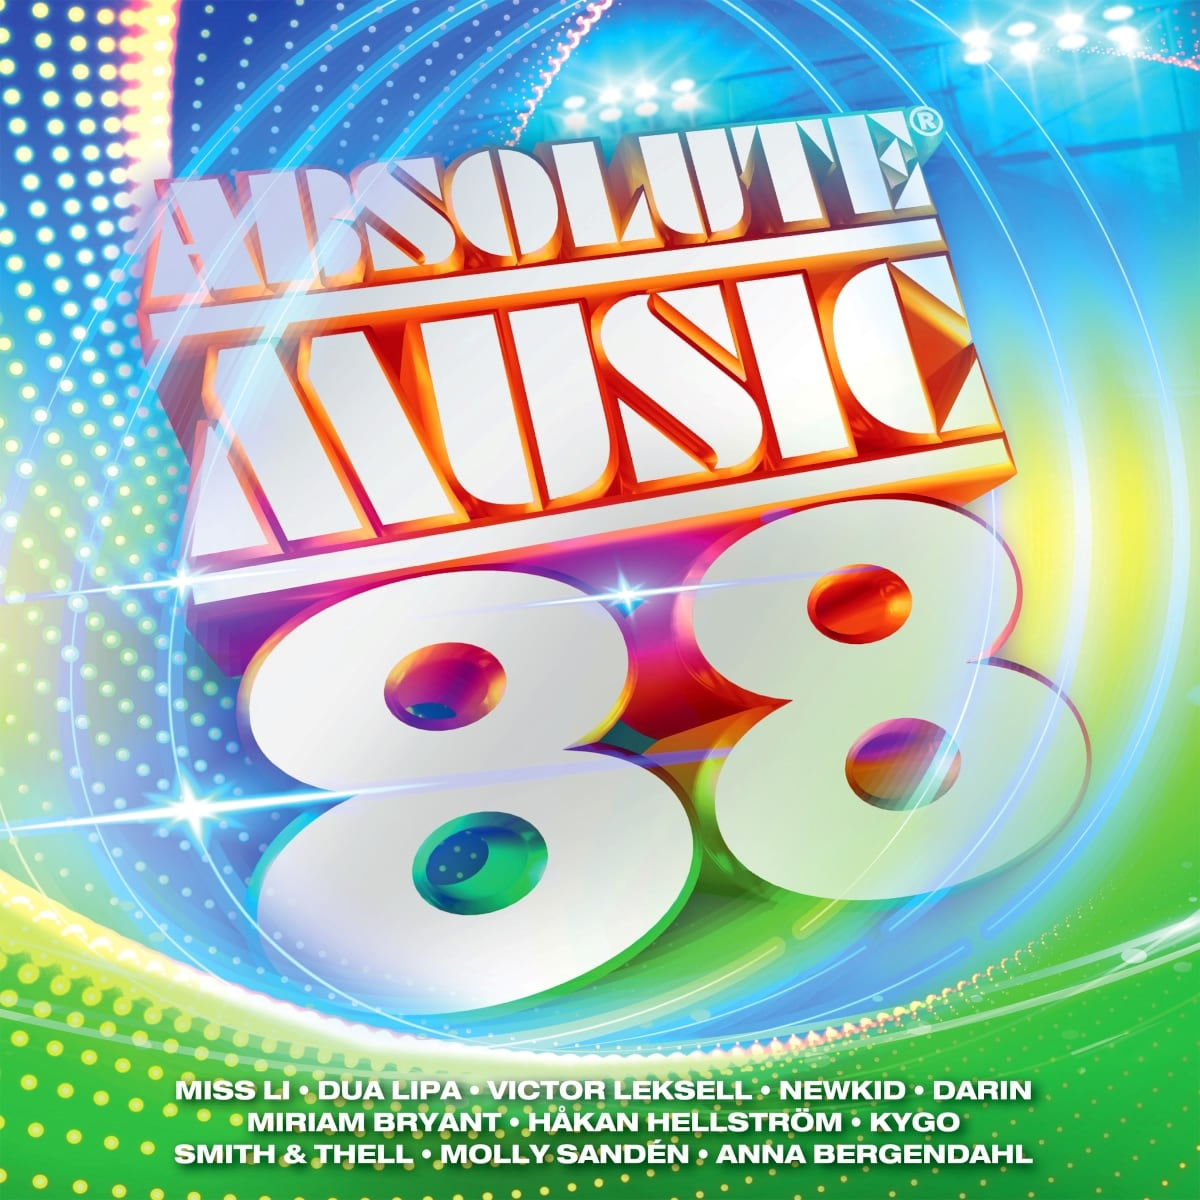 VA - Absolute Music 88 (2020) [FLAC] Download